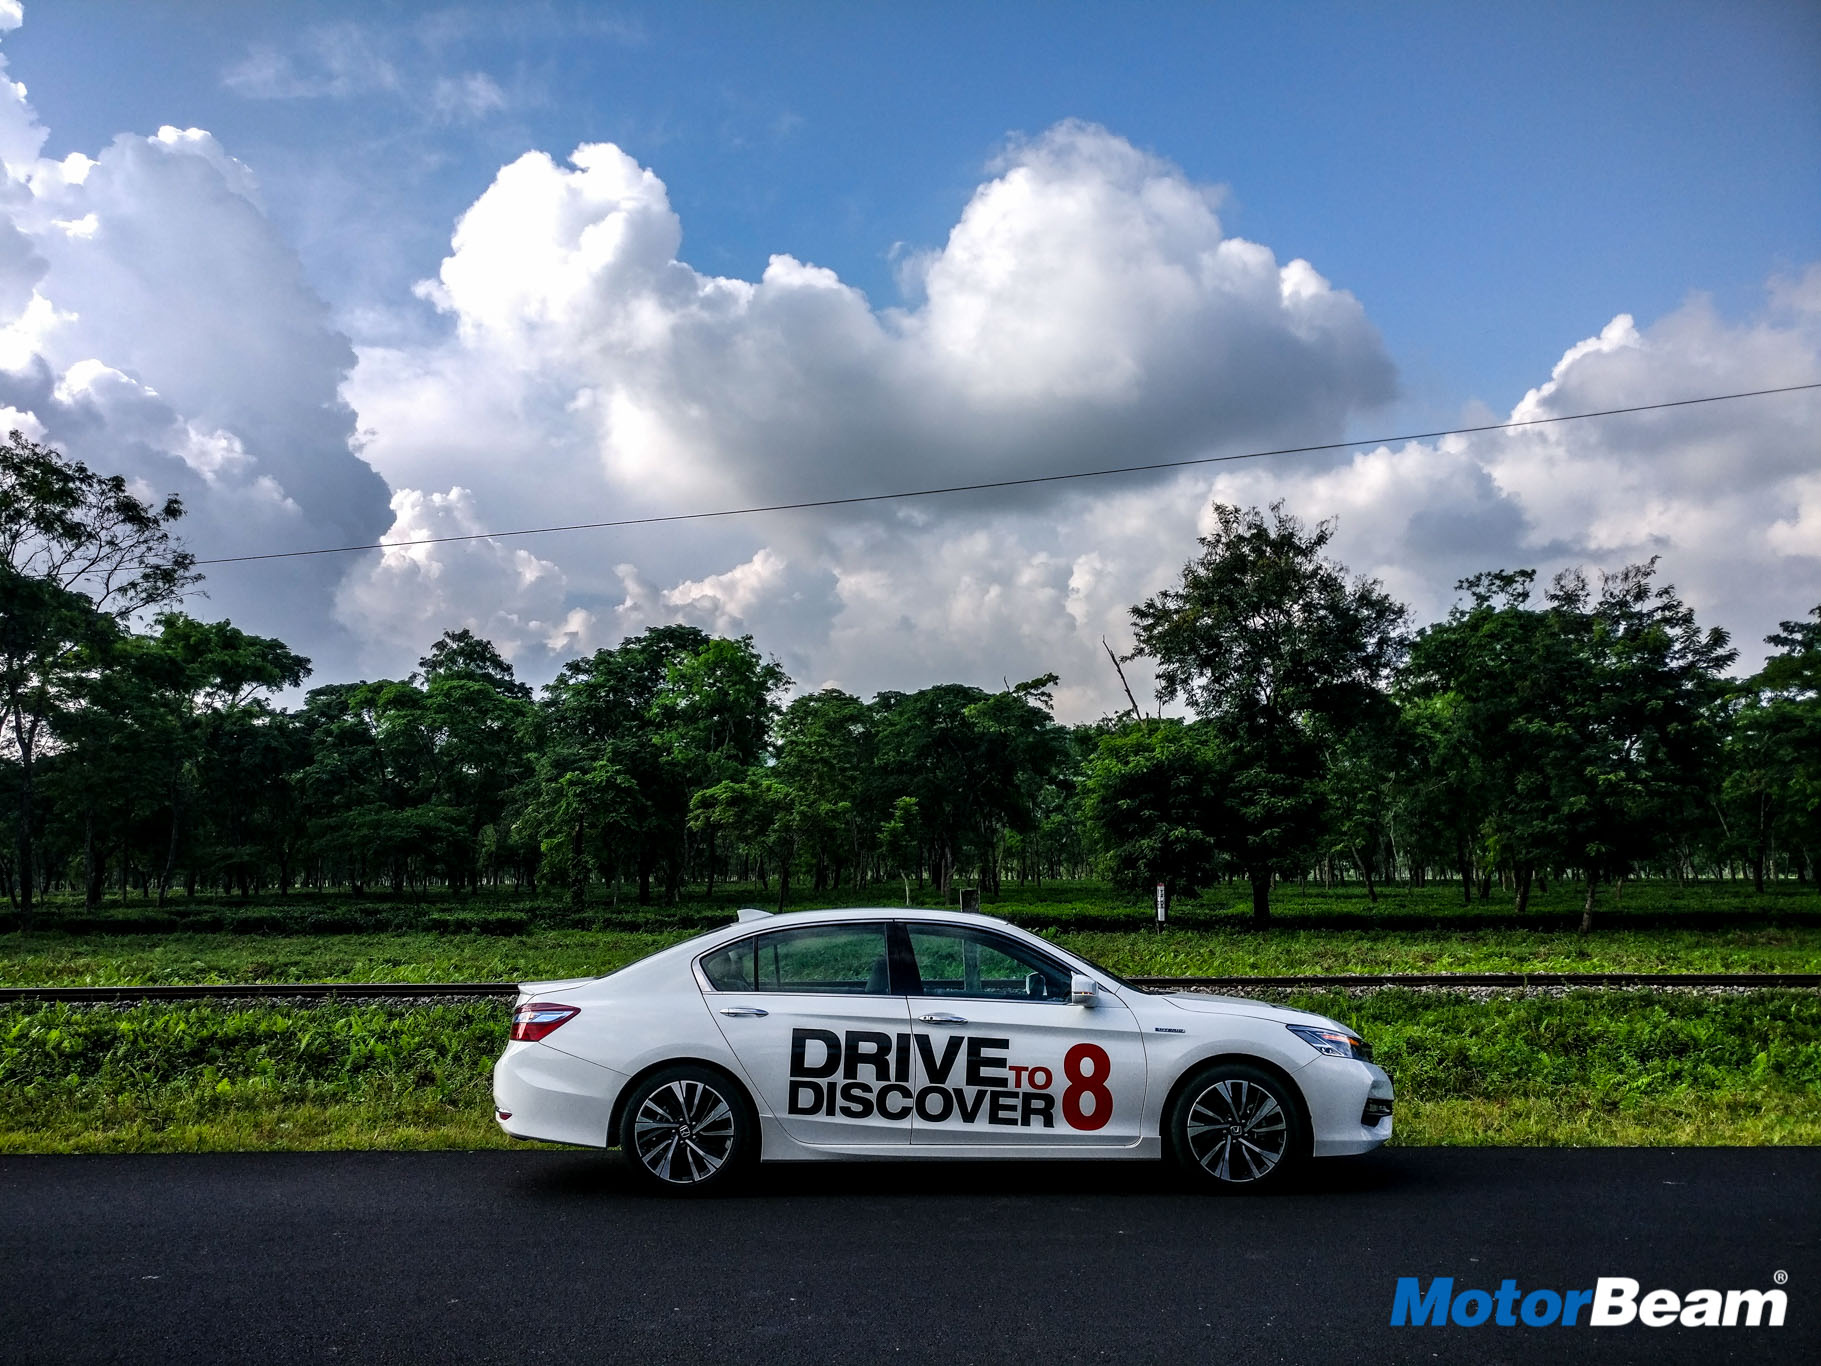 Honda Drive To Discover 8